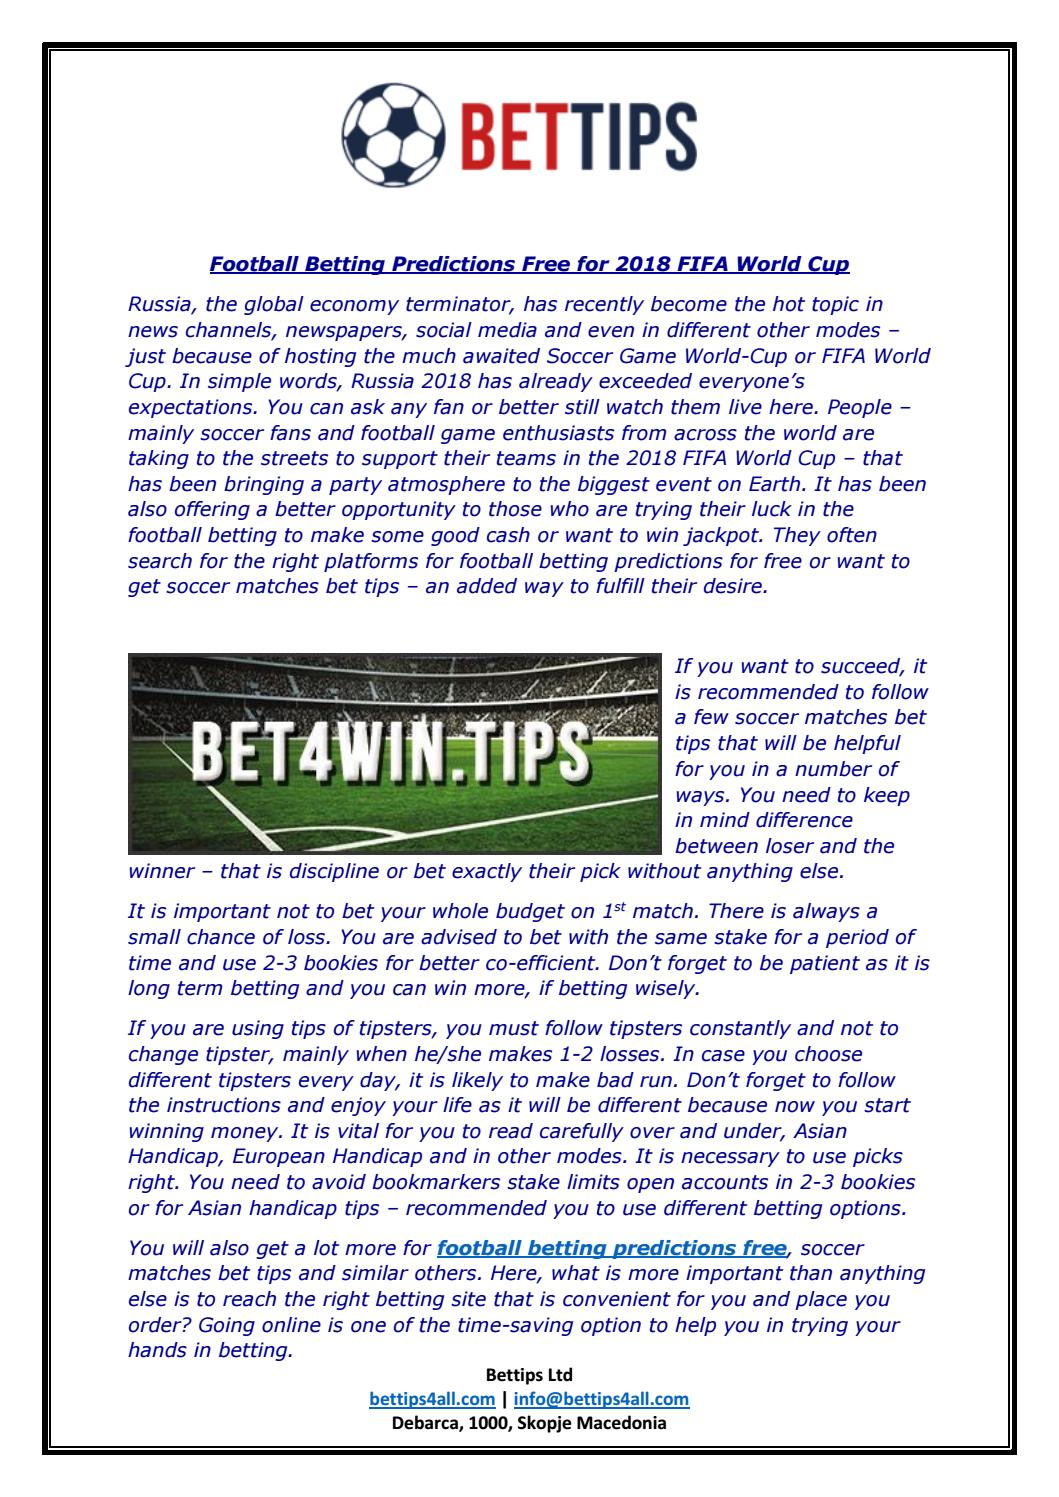 Football betting predictions free for 2018 fifa world cup by Bettips